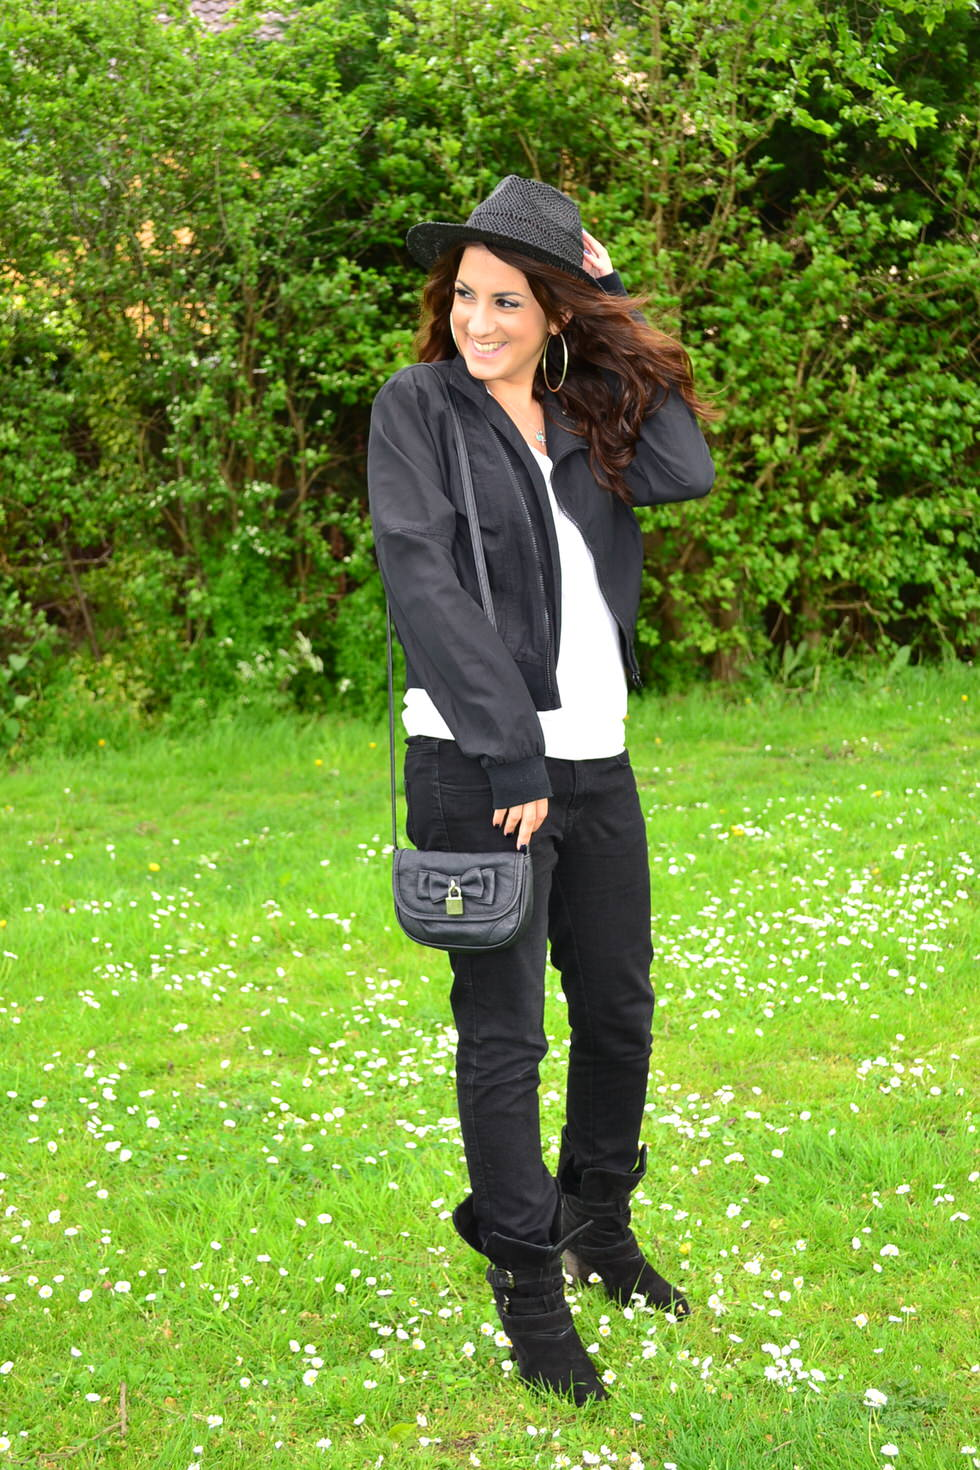 Fashion Blog - Black and White Outfit